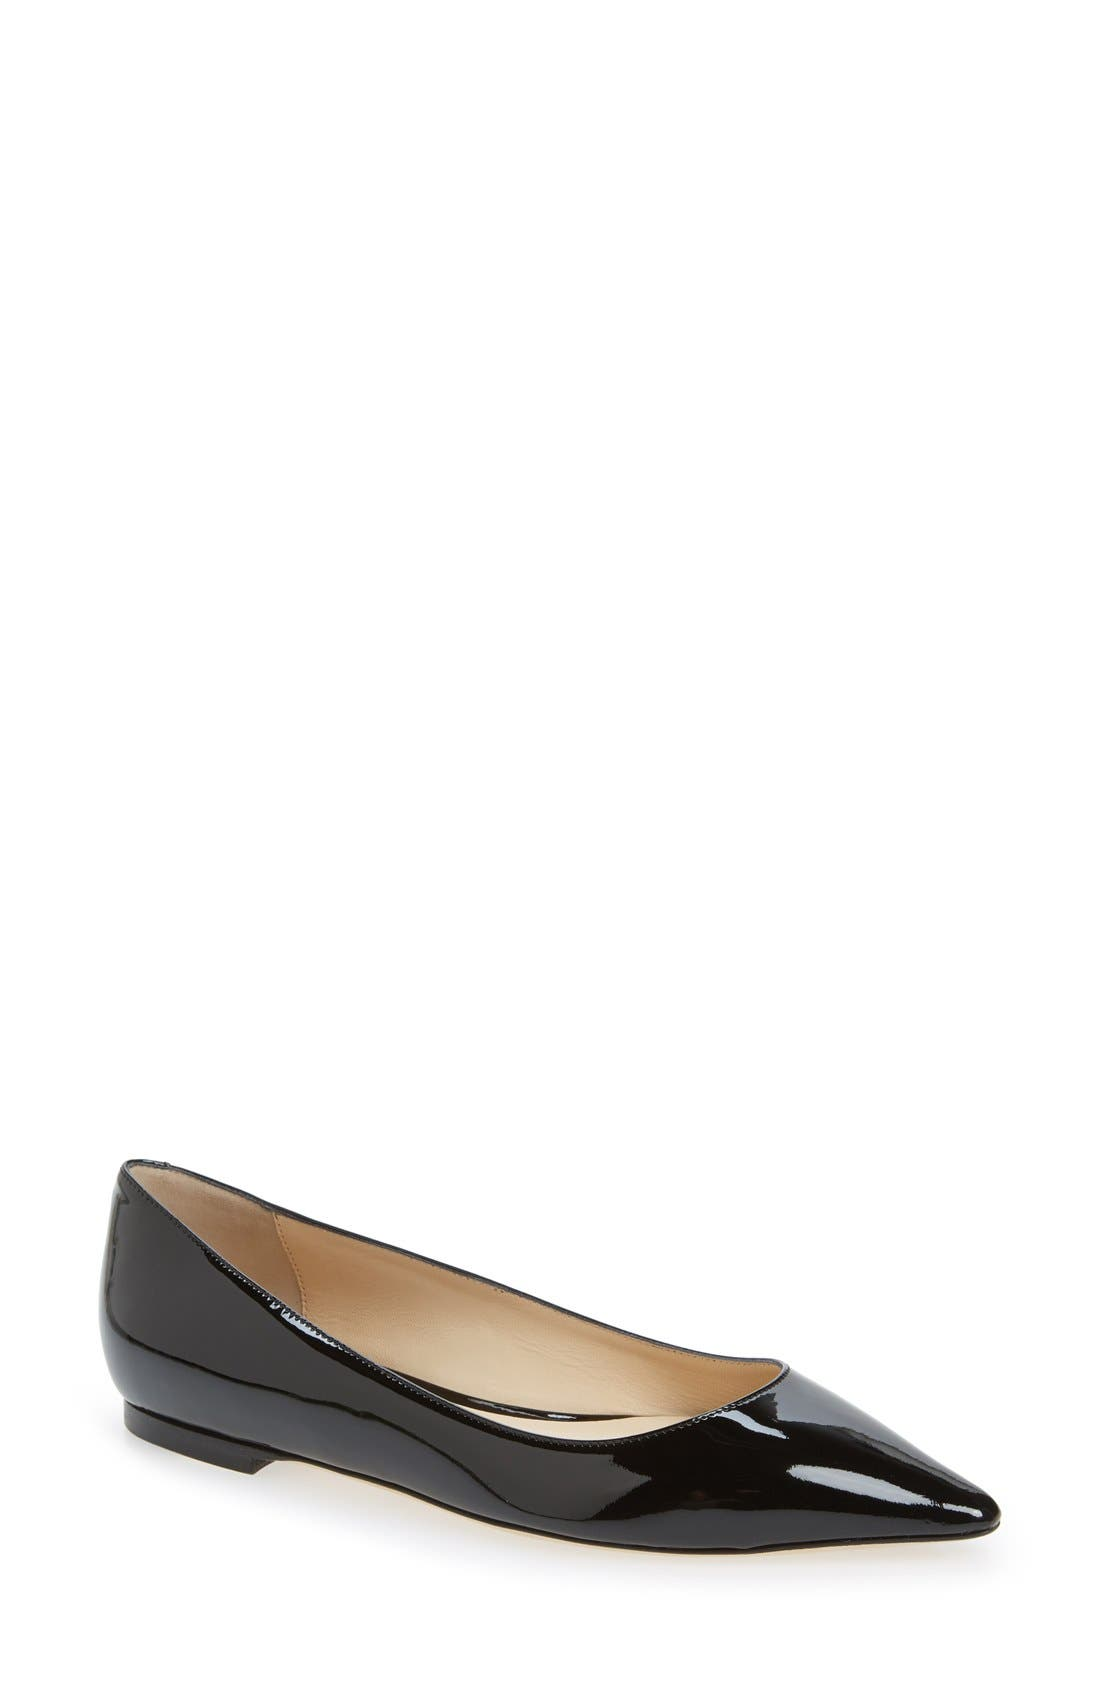 JIMMY CHOO 'Romy' Pointy Toe Flat, Main, color, 004